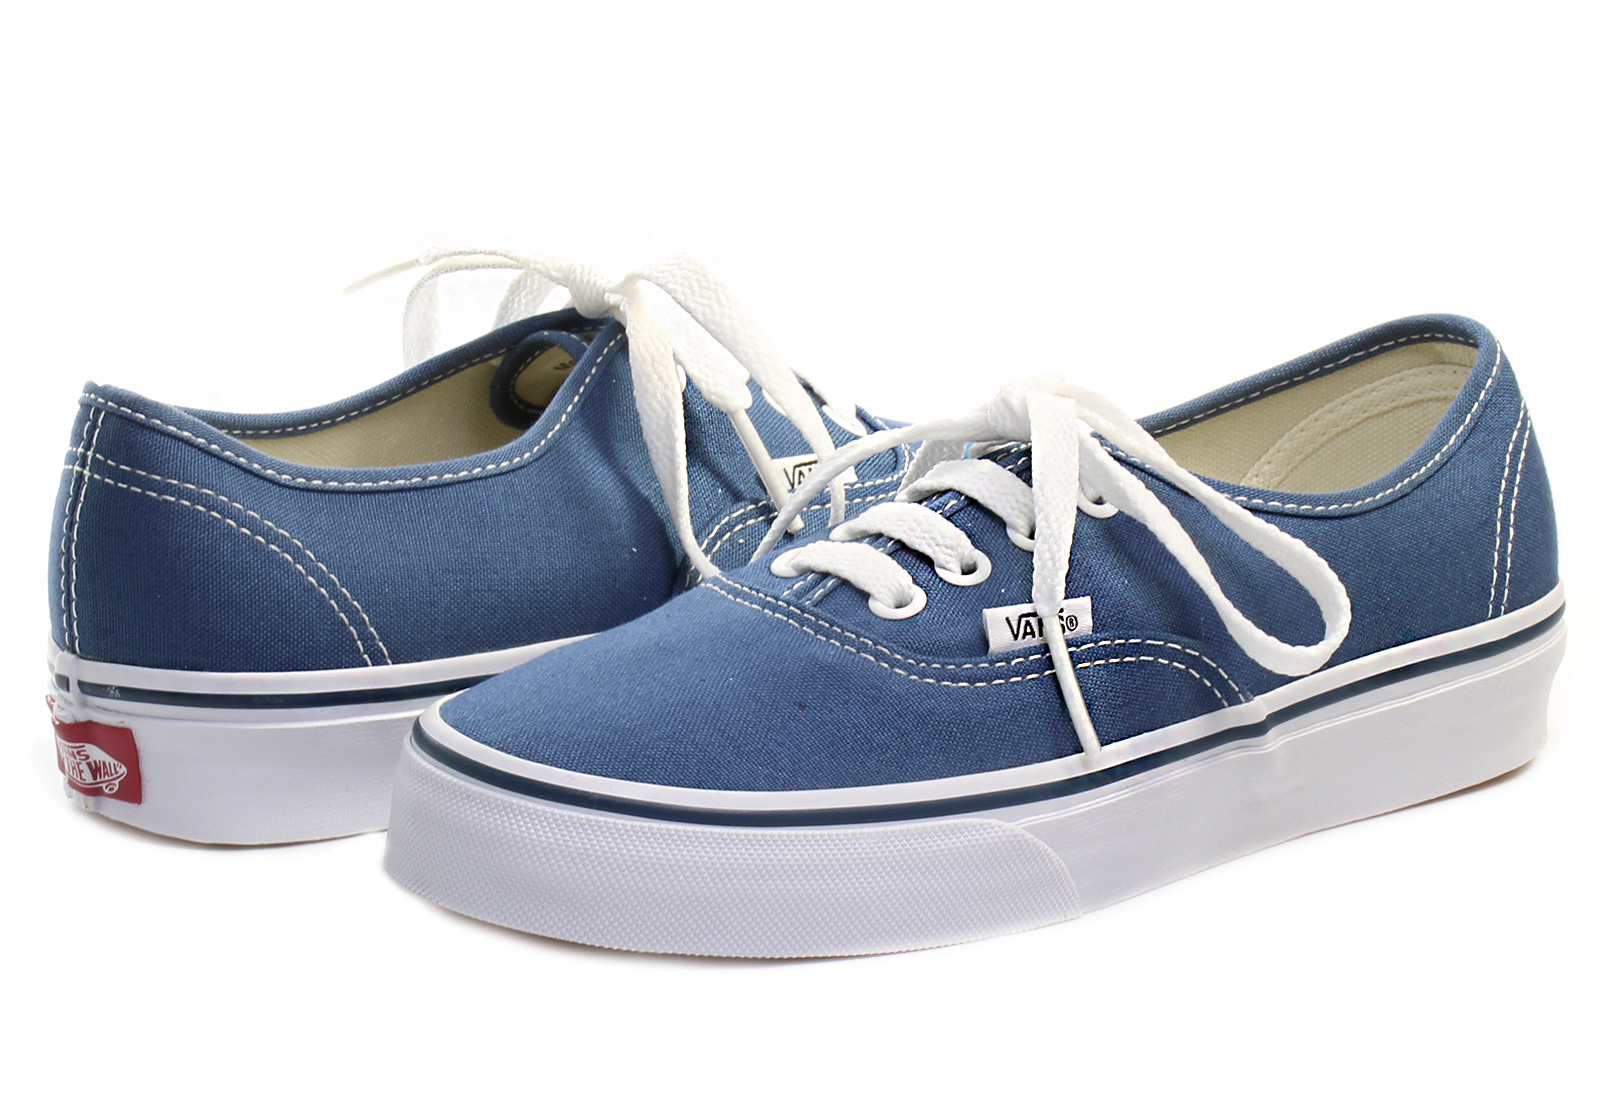 Vans Shoes - Ua Authentic - vee3nvy - Online shop for sneakers ... 3be8d59056